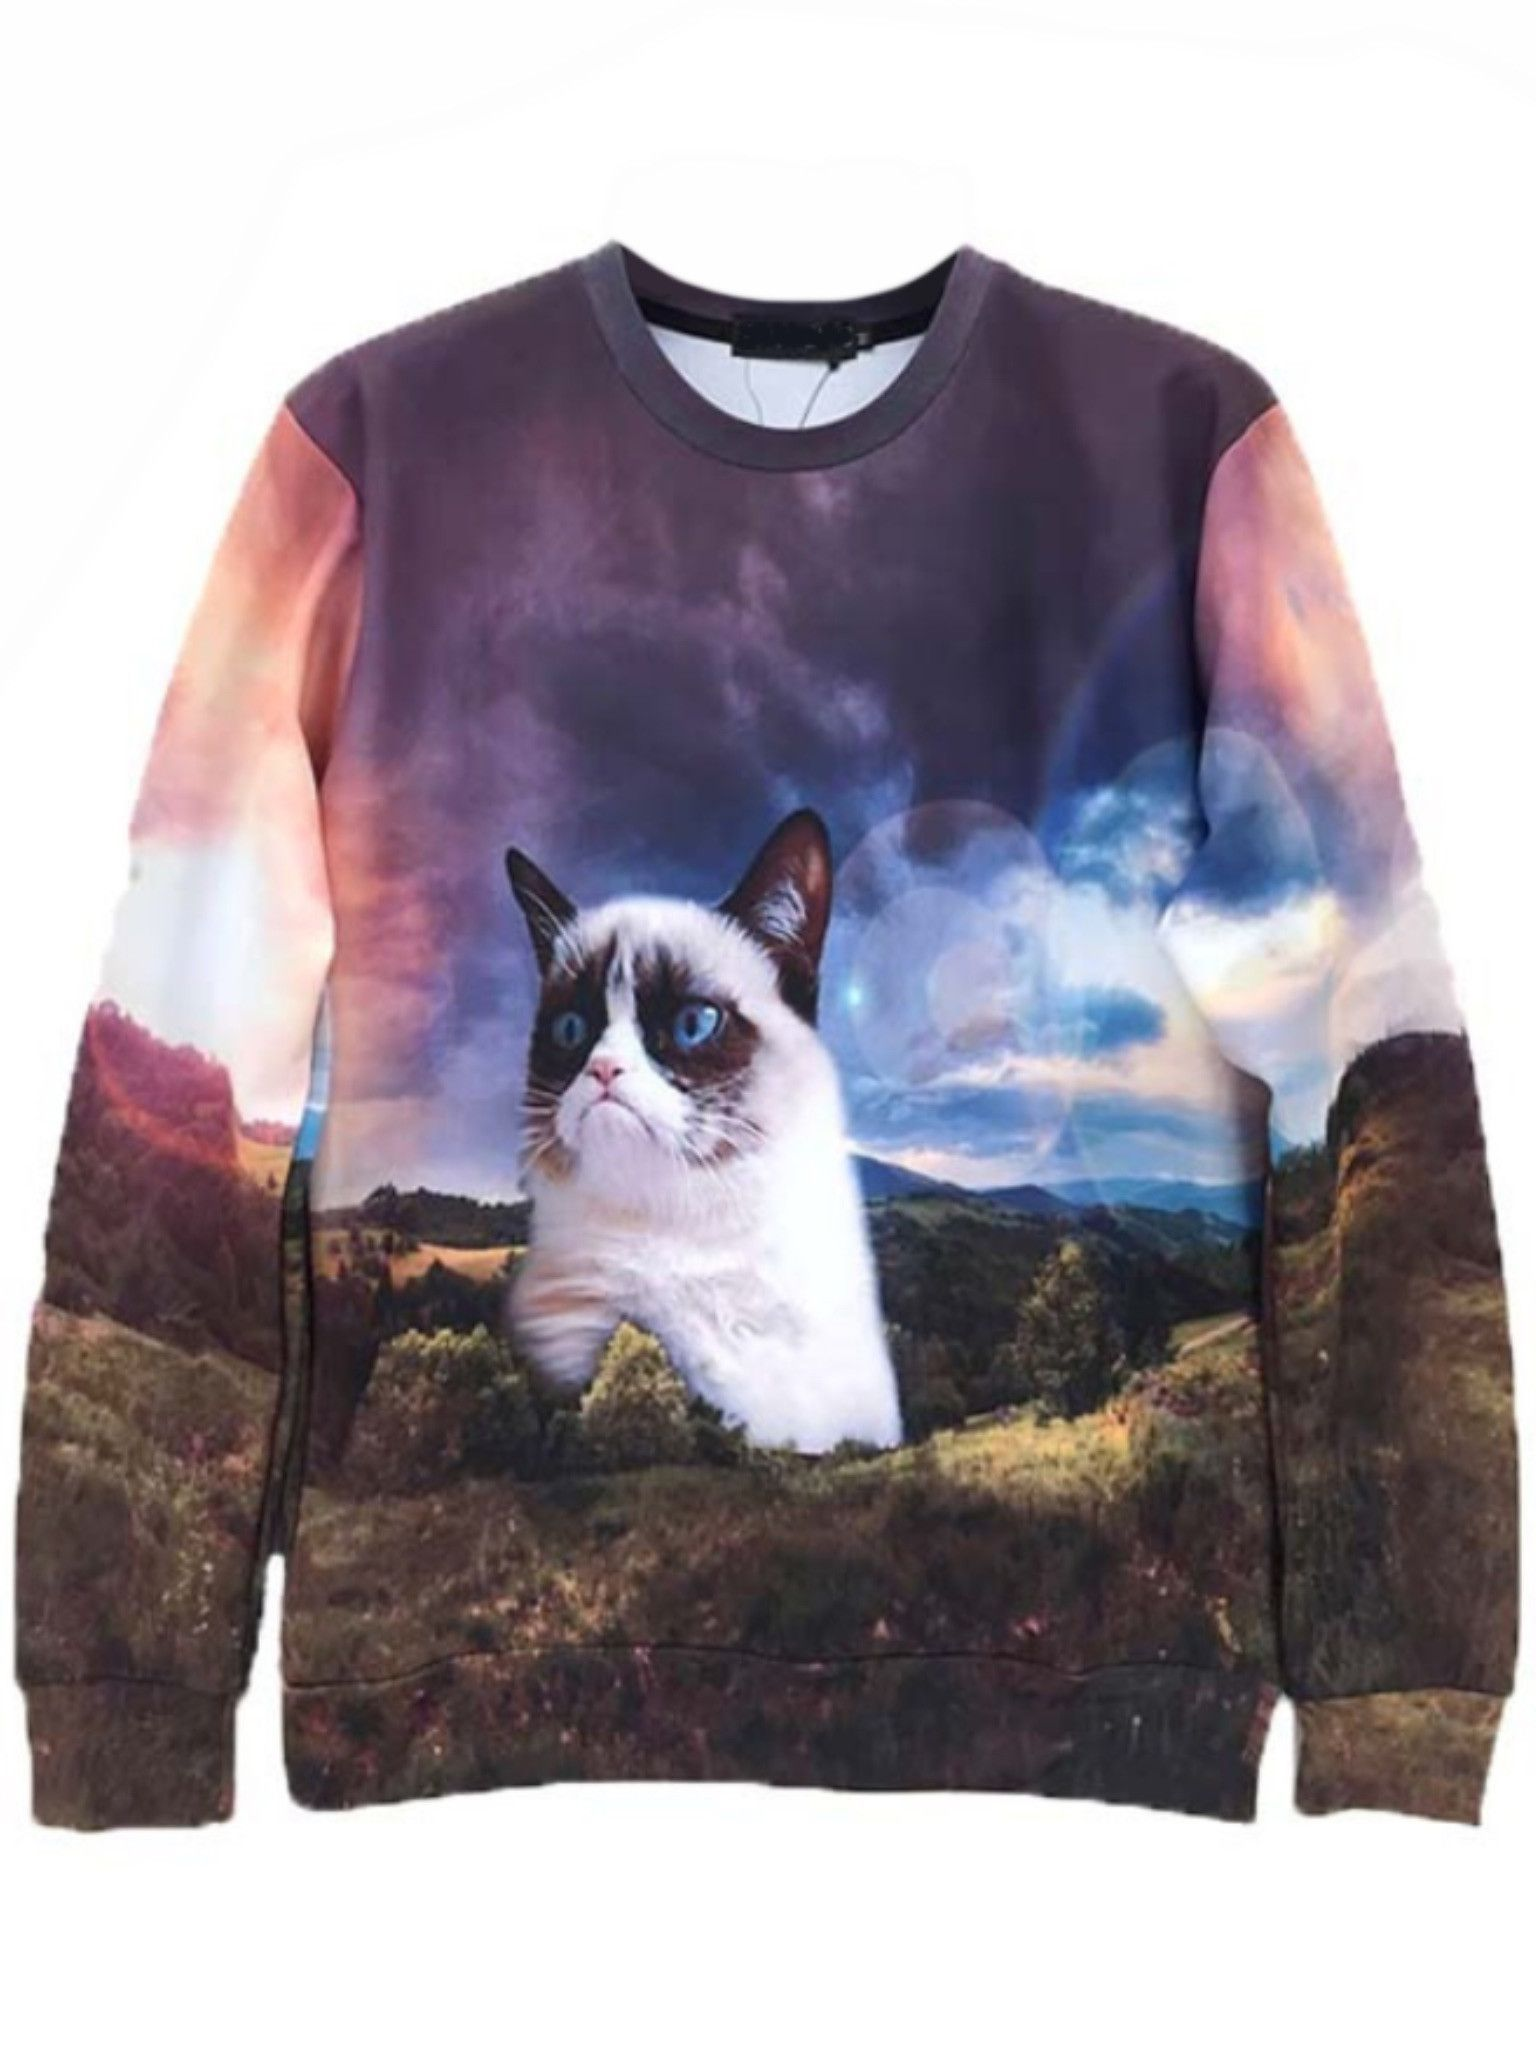 Adorable Grumpy Cat In Space Graphic Print Unisex Pullover Sweatshirt Sweater Gifts For Cat Lovers Cute Sweatshirts Cat Sweatshirt Grumpy Cat [ 2048 x 1536 Pixel ]